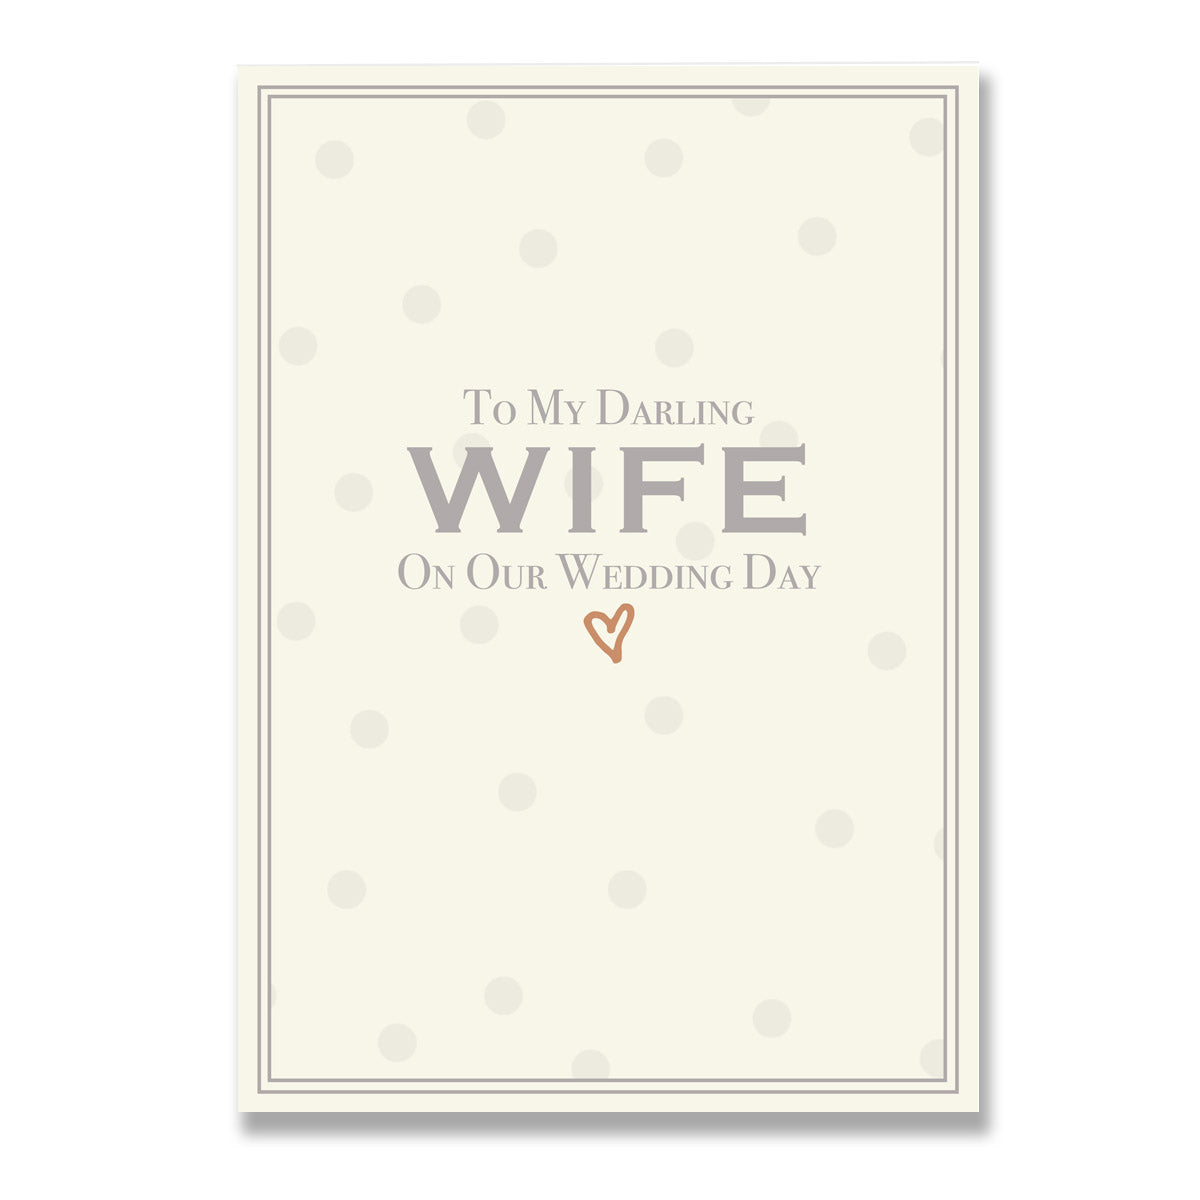 To My Darling Wife On Our Wedding Day Greeting Card-Greeting Cards-Mode Prints